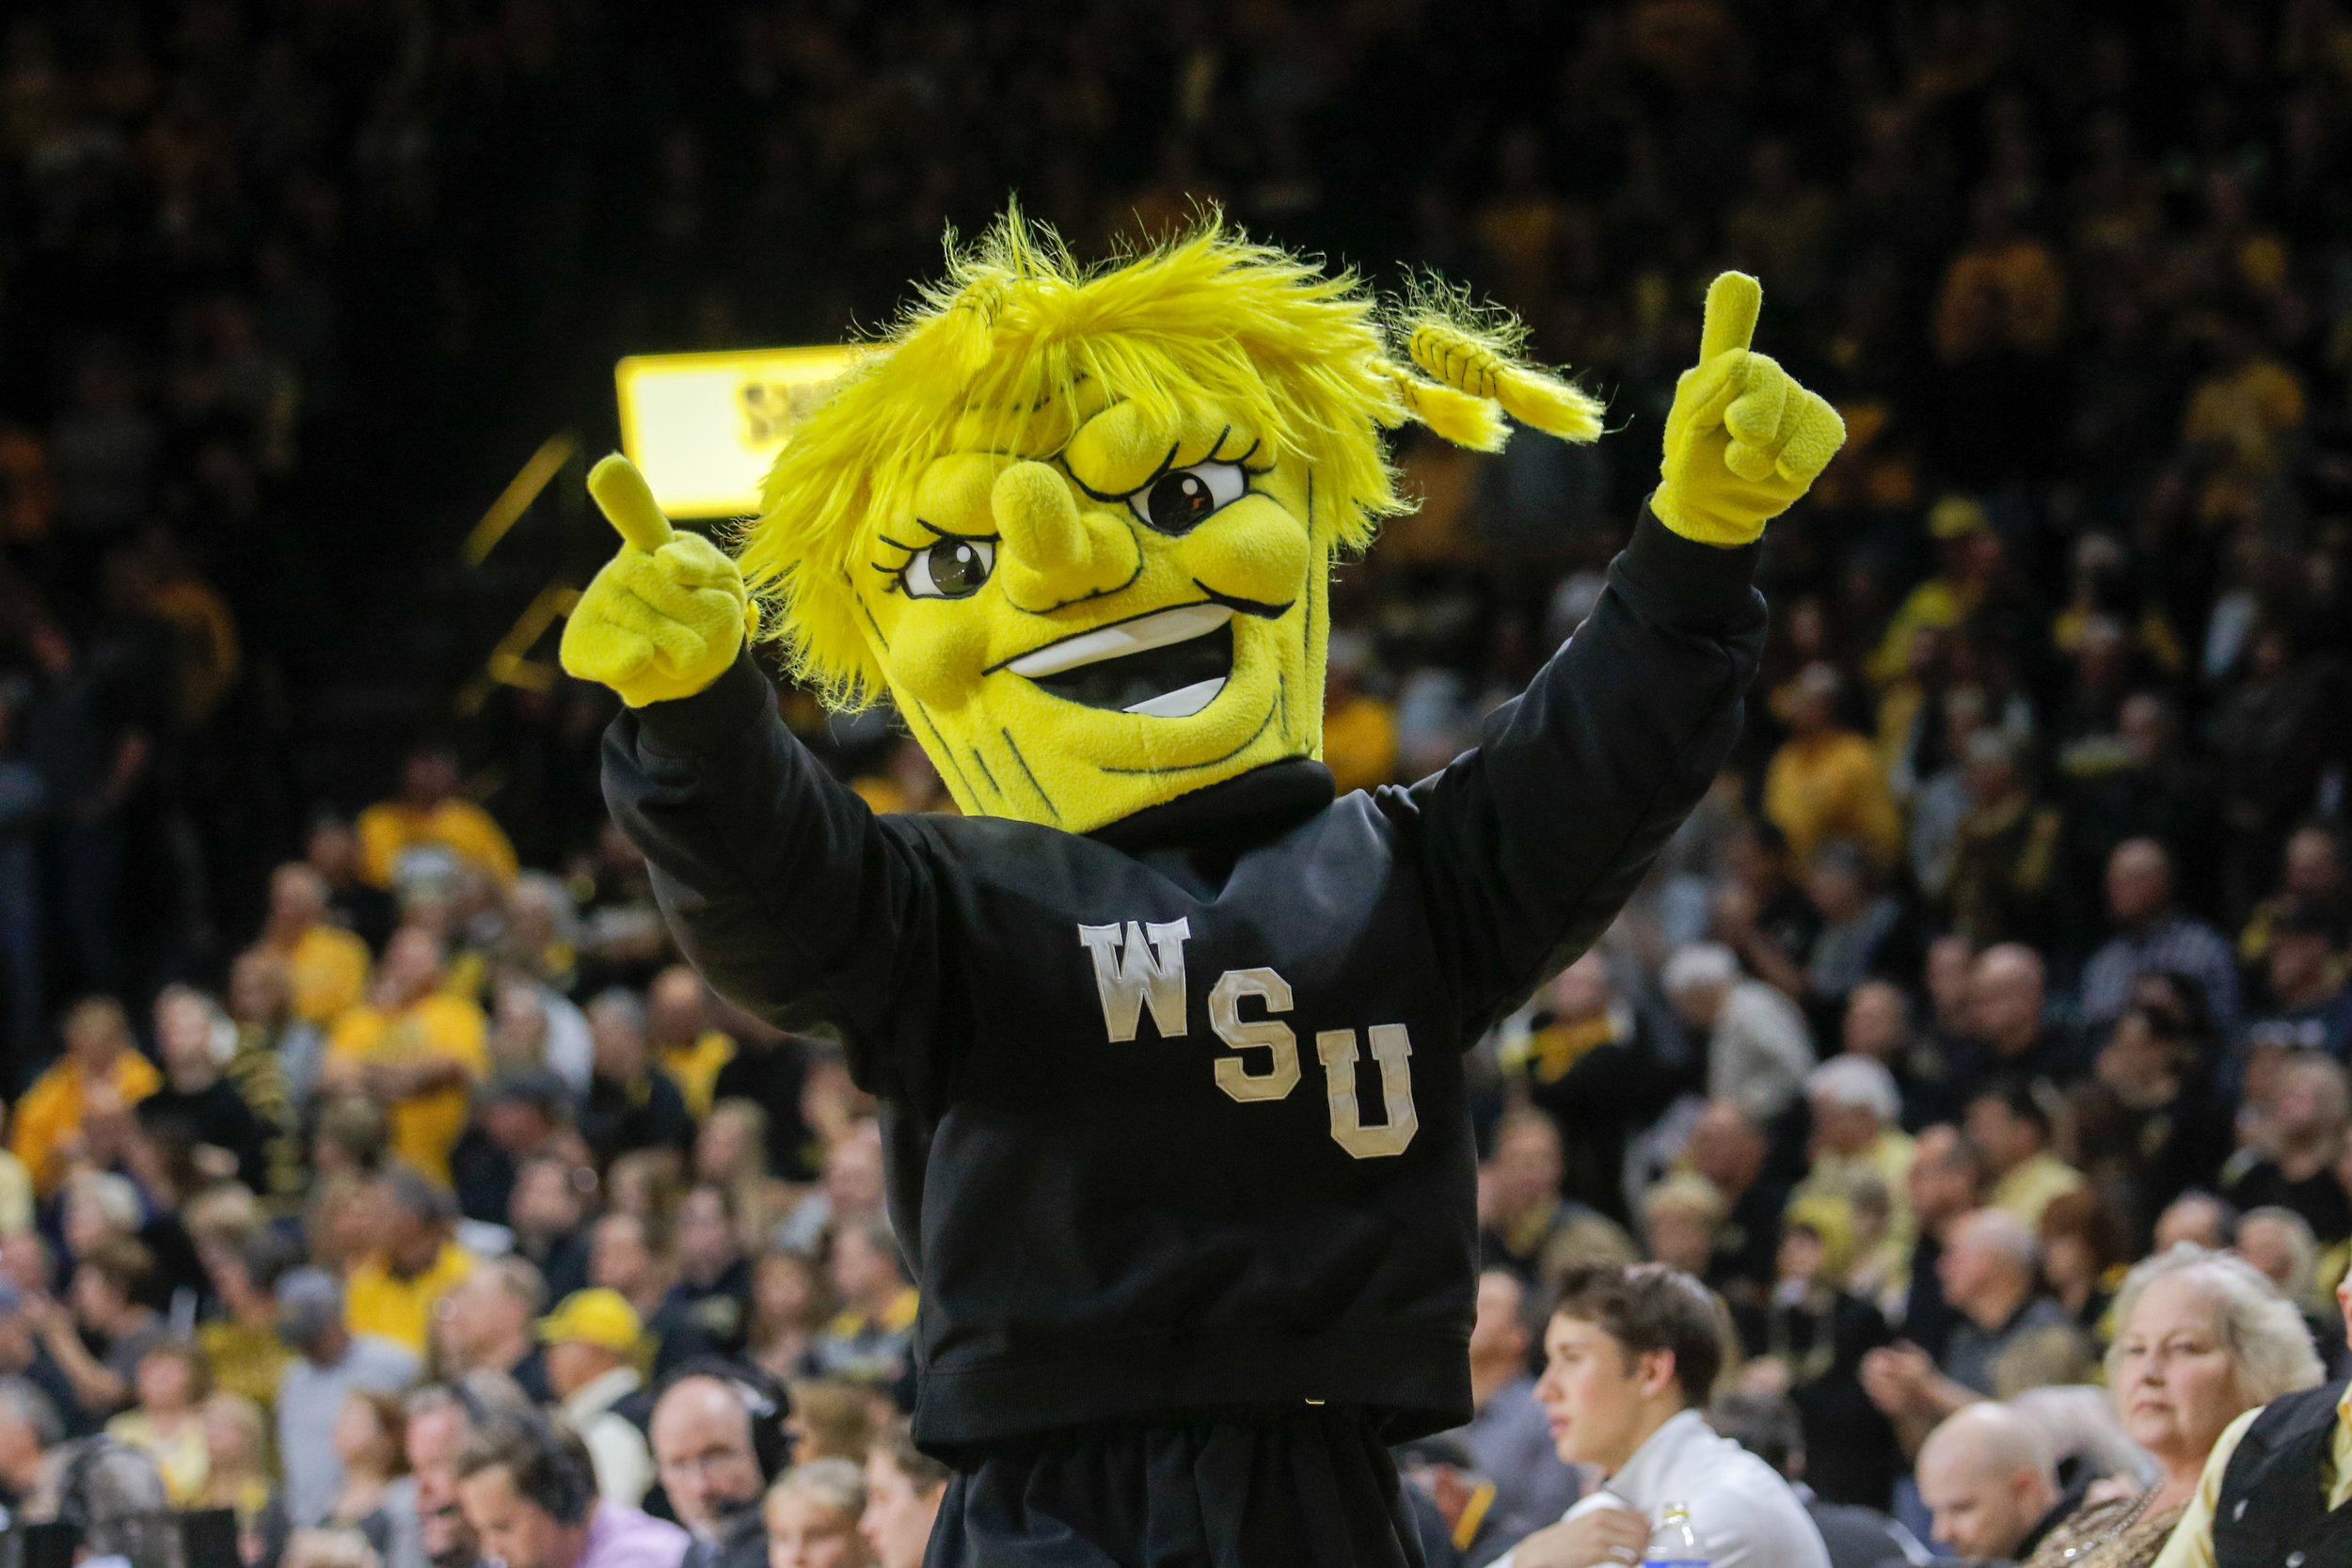 Wichita State's mascot runs across the court during a game on November 13, 2017.